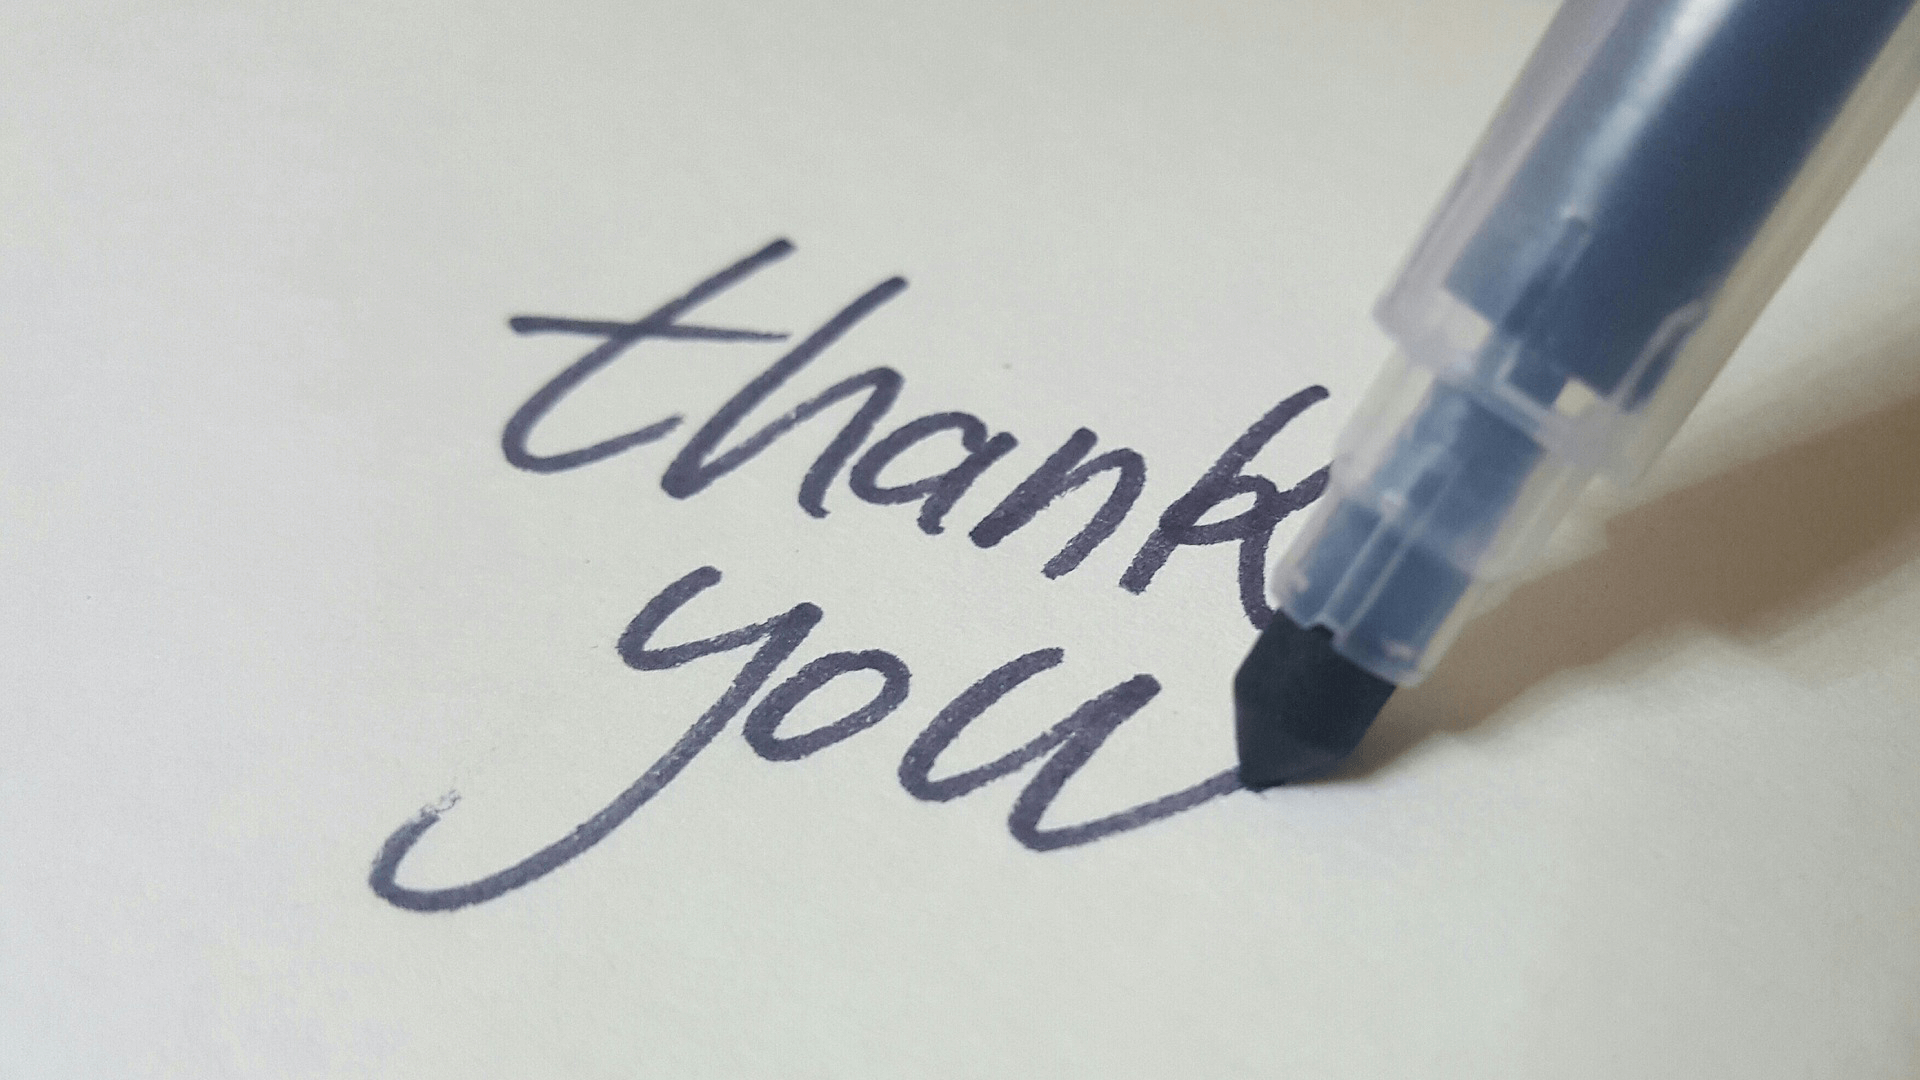 StatMed Urgent Care Center Thank You Note